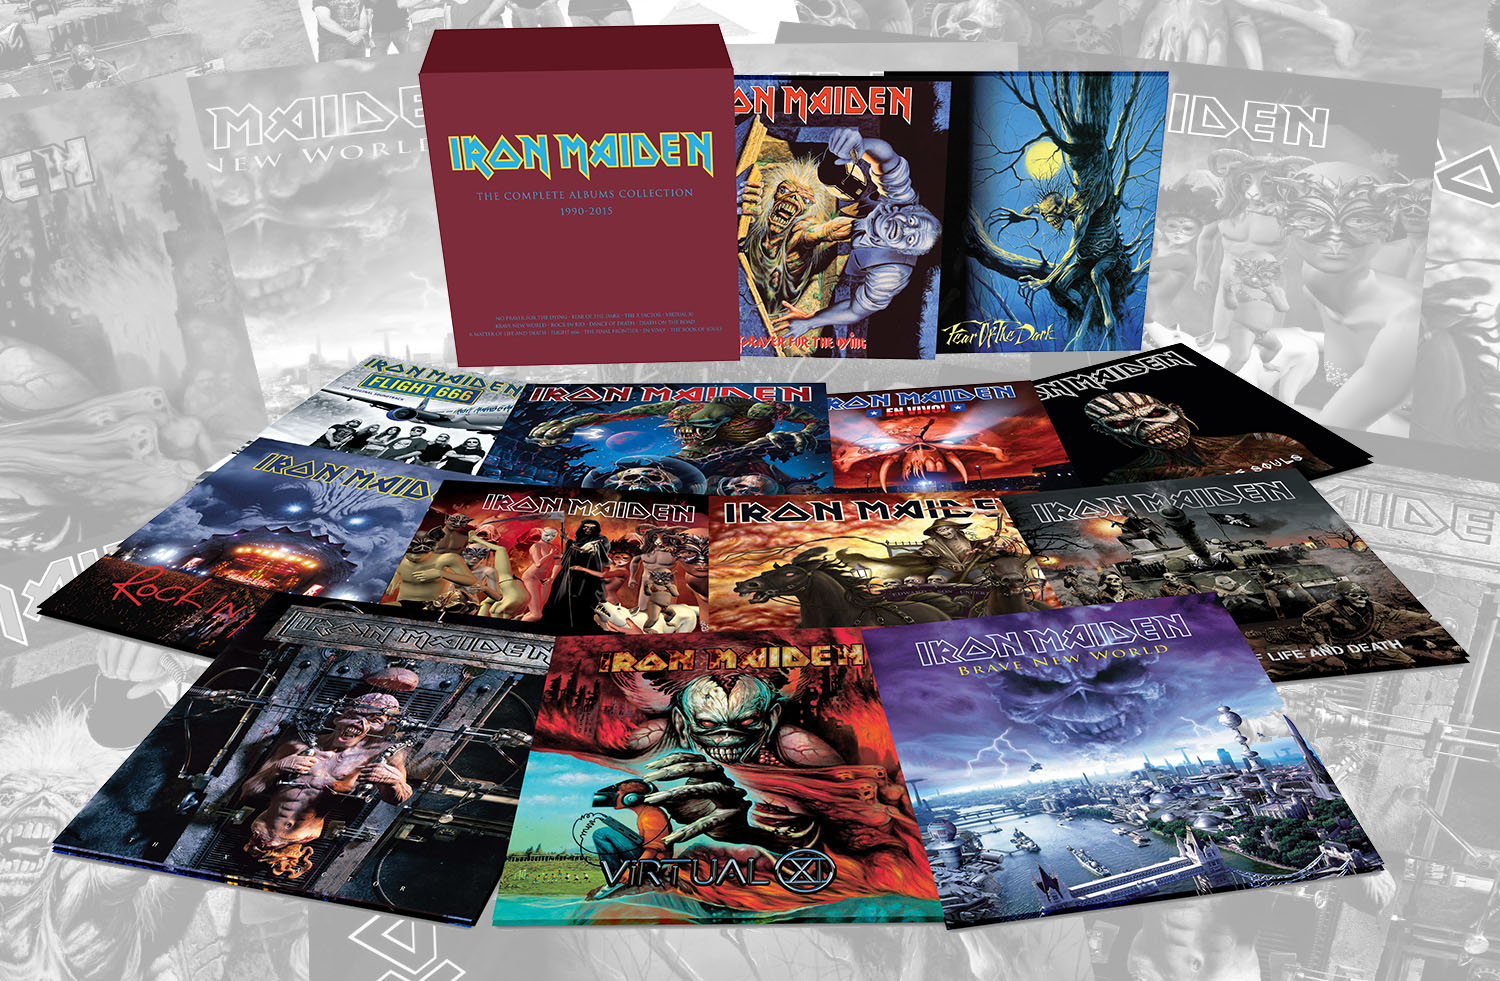 Iron Maiden The Complete Albums Collection